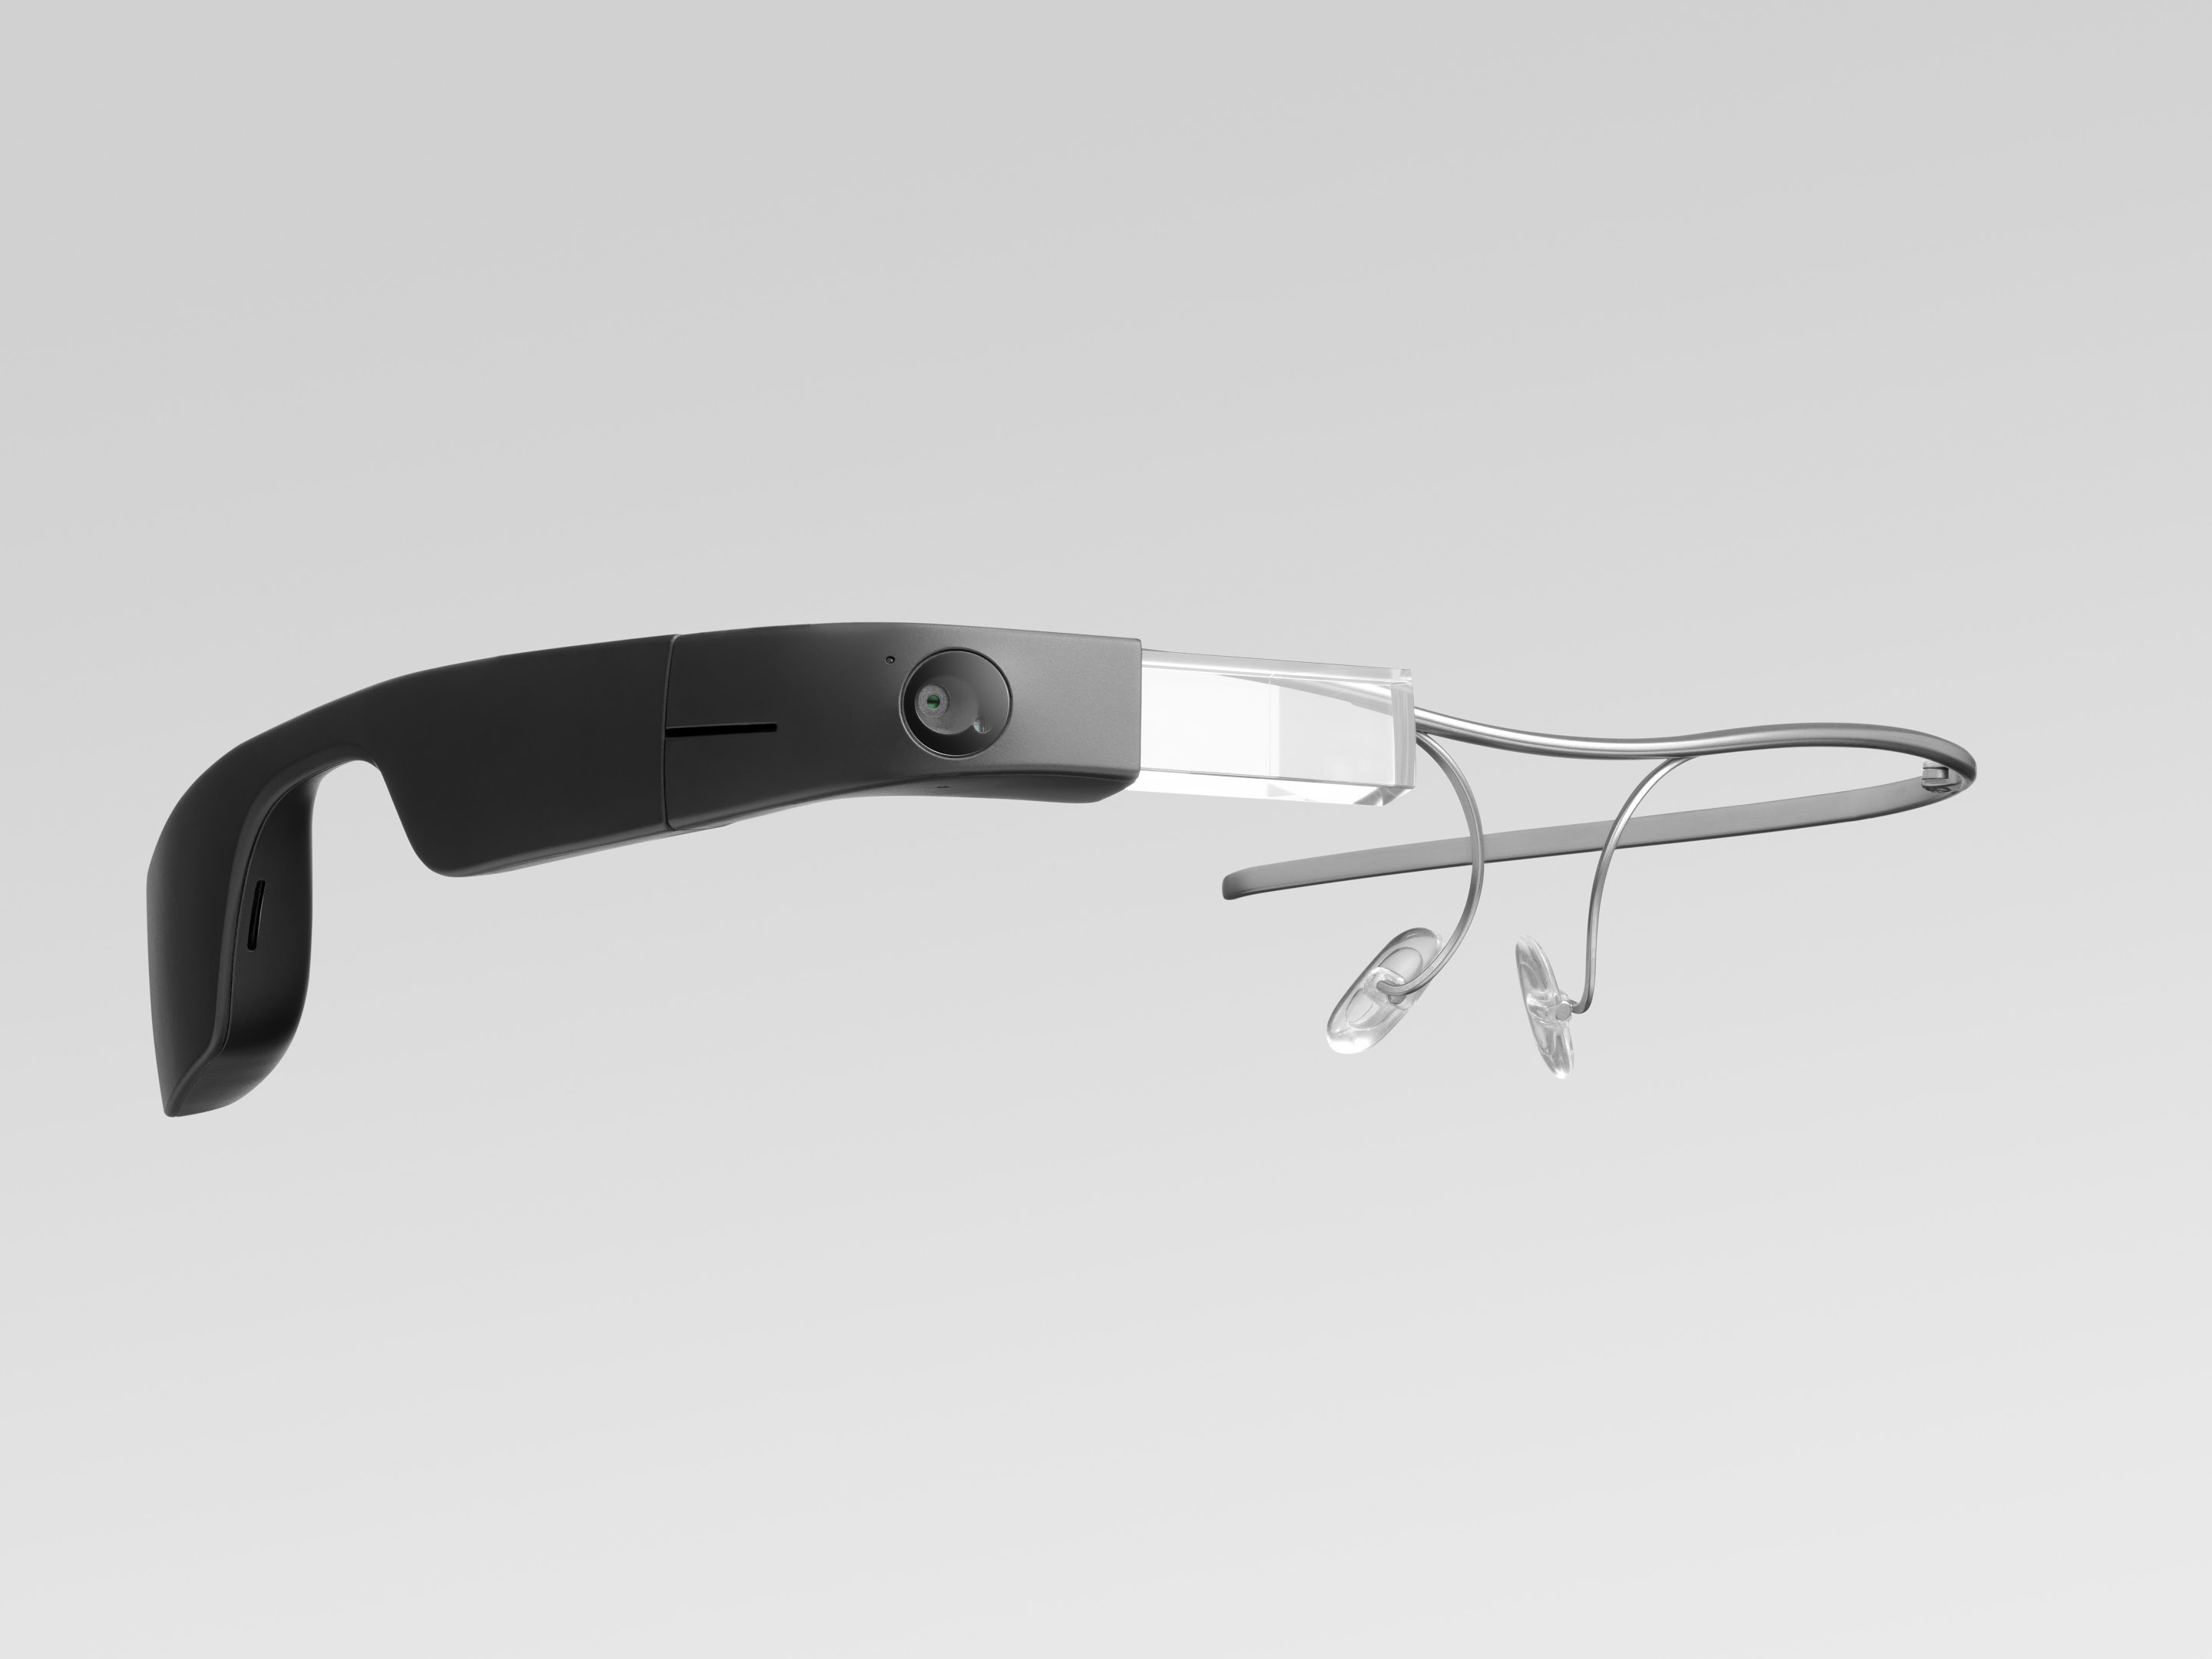 Another picture of the Google Glass